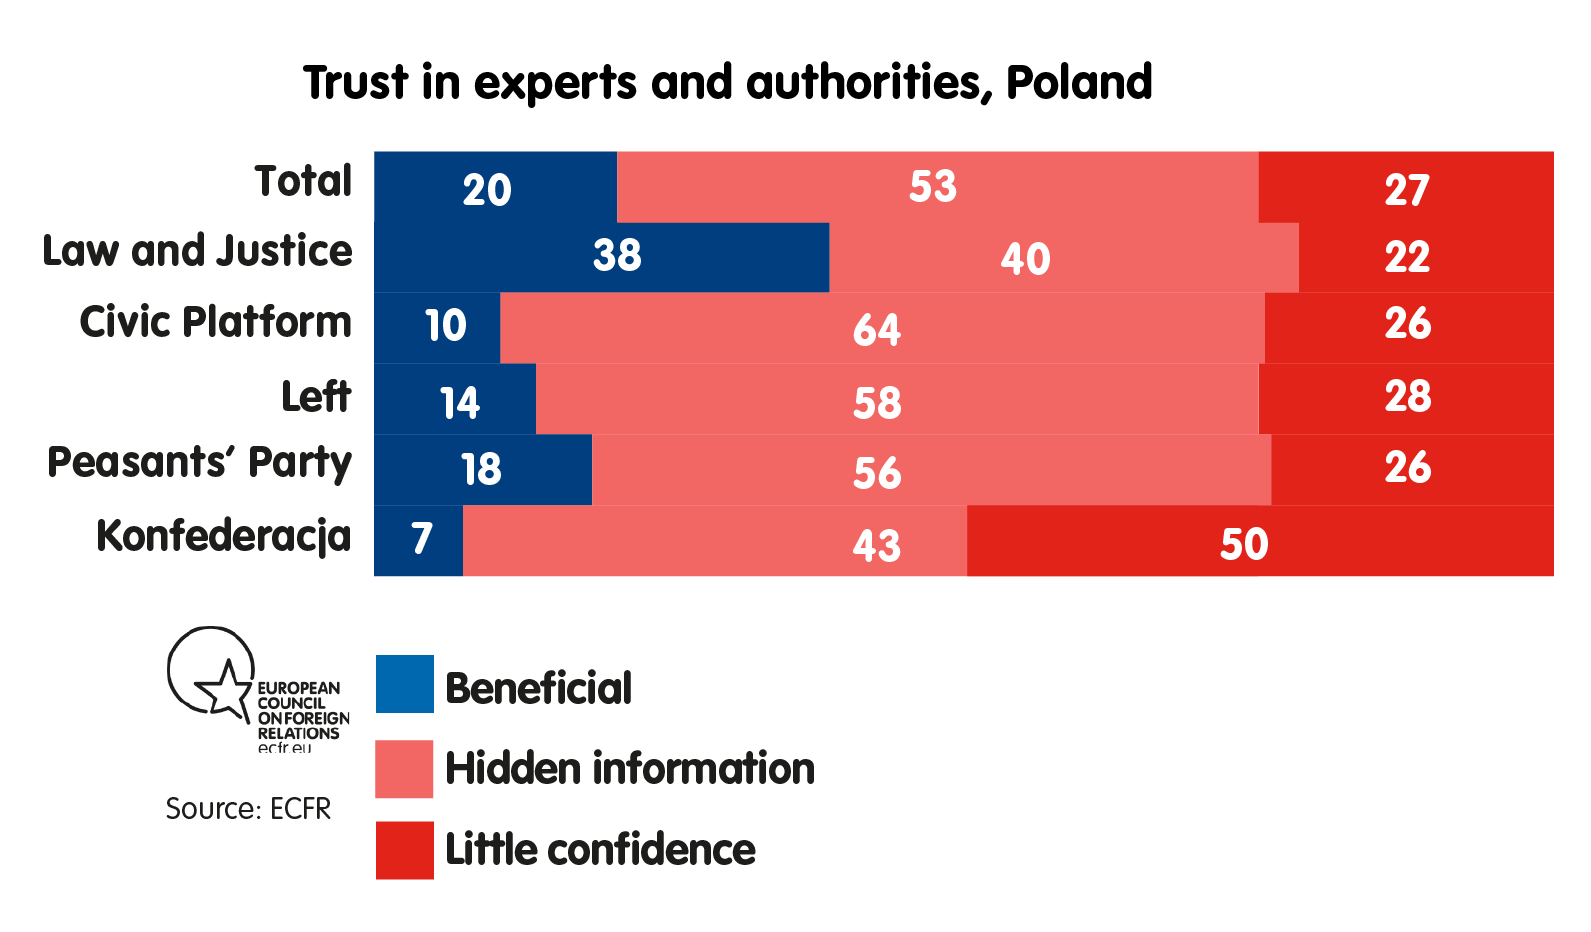 Trust in experts and authorities, Poland